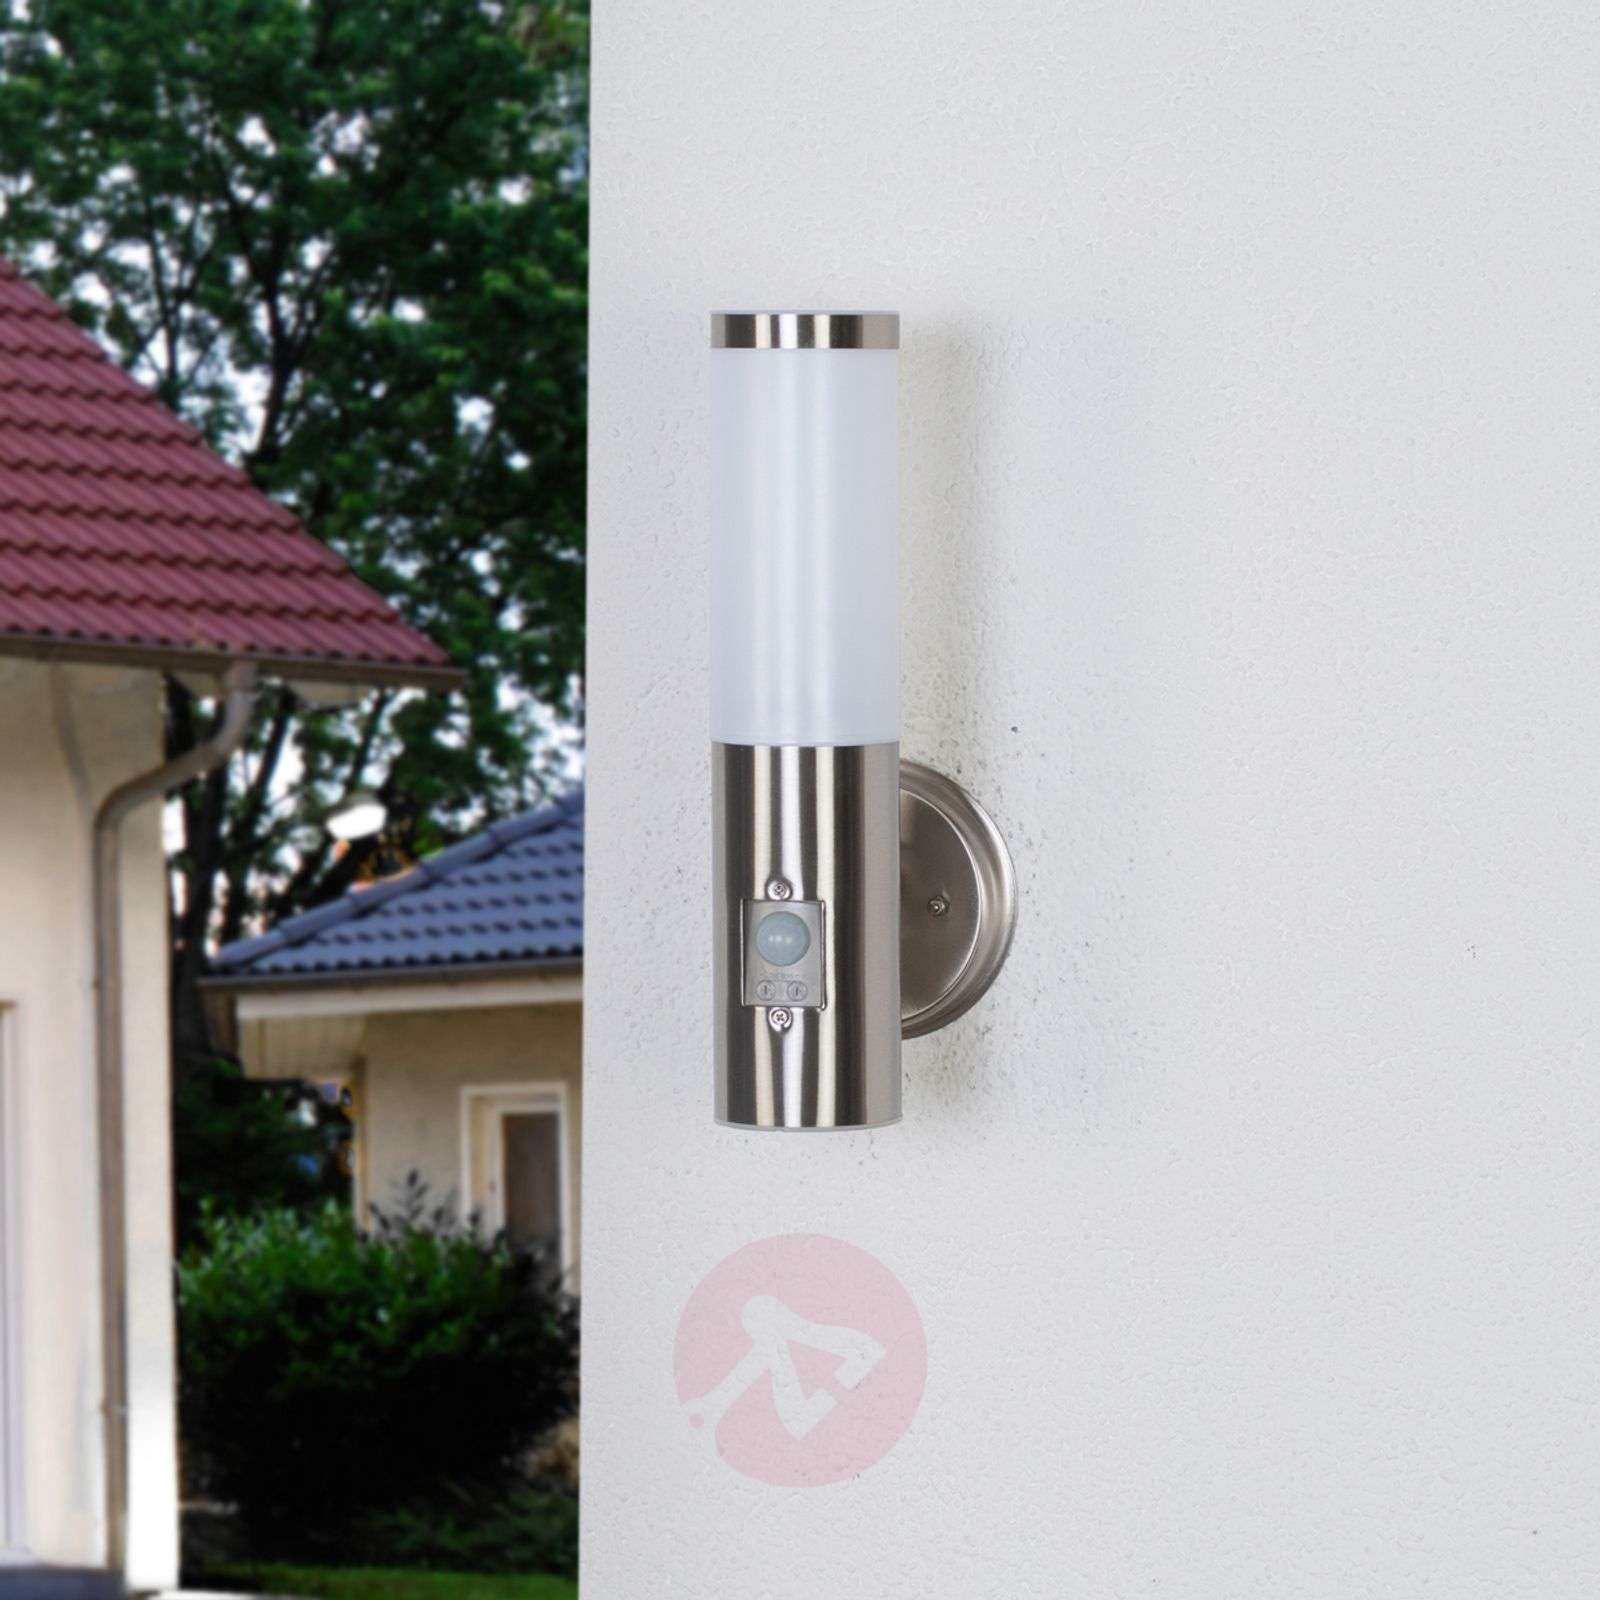 Kristof stainless steel sensor outdoor wall light-9972054-03